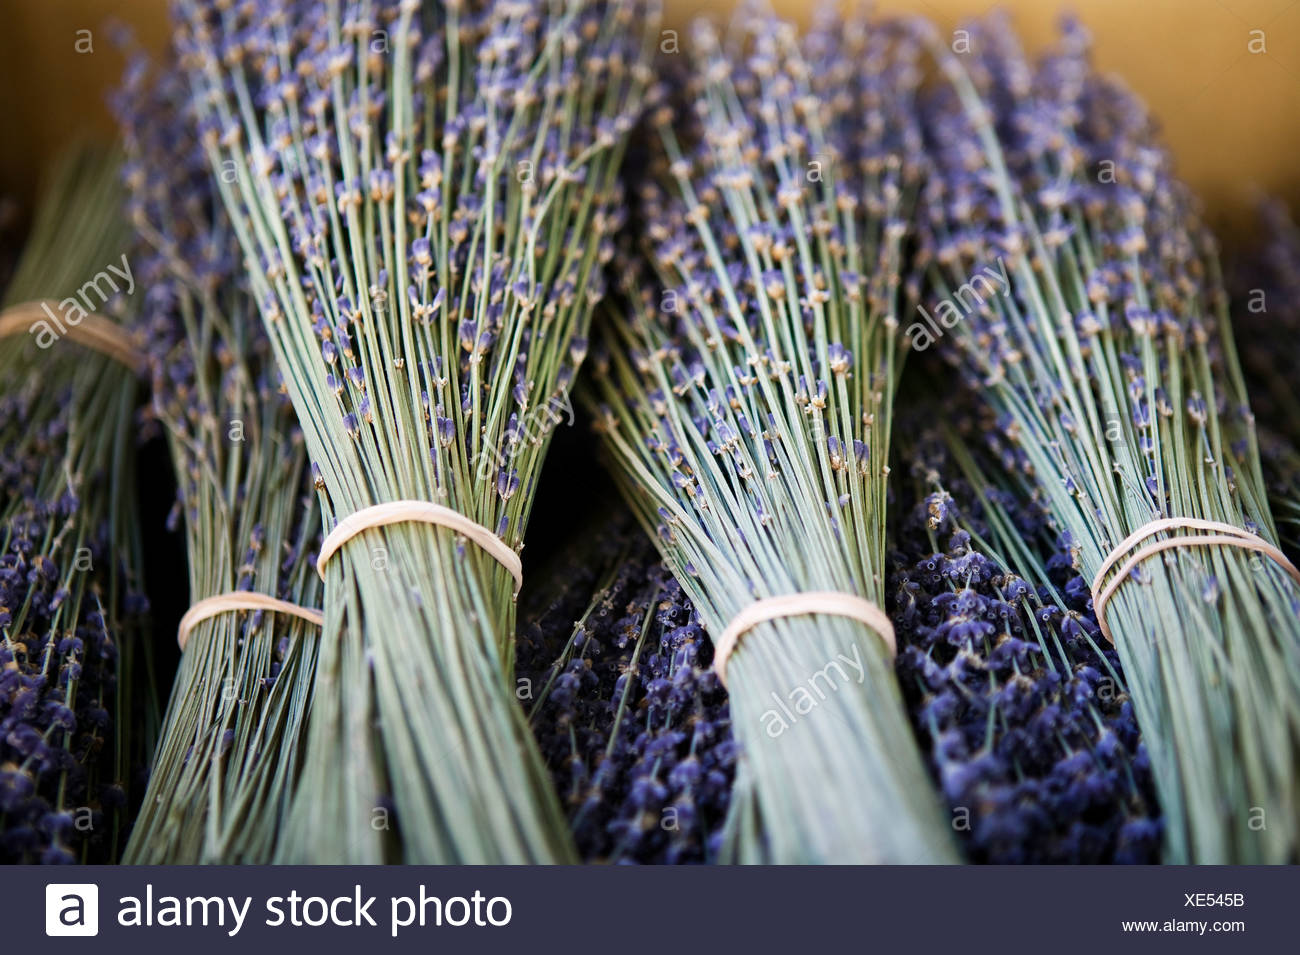 Bunches of lavenders, France - Stock Image